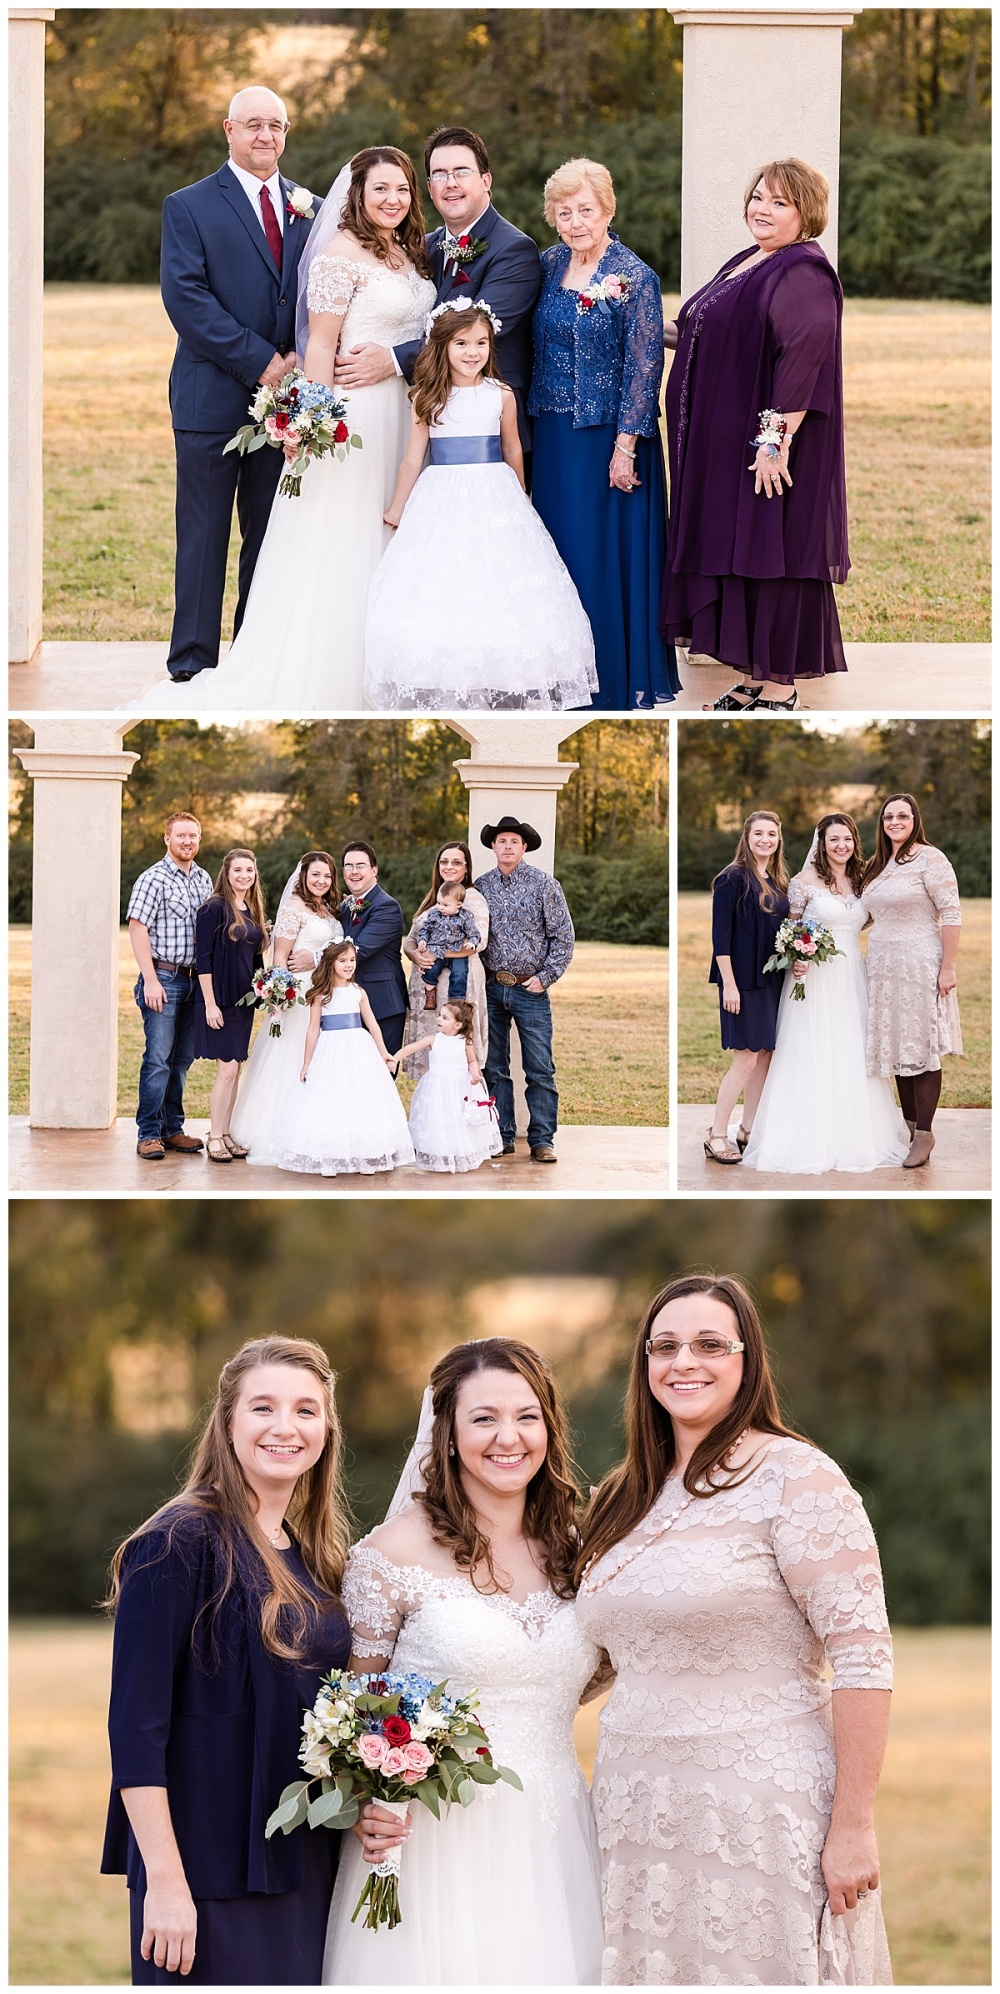 Wedding-Photographer-The-Legacy-Jacksonville-Texas-Arron-Krystal-Carly-Barton-Photography_0038.jpg